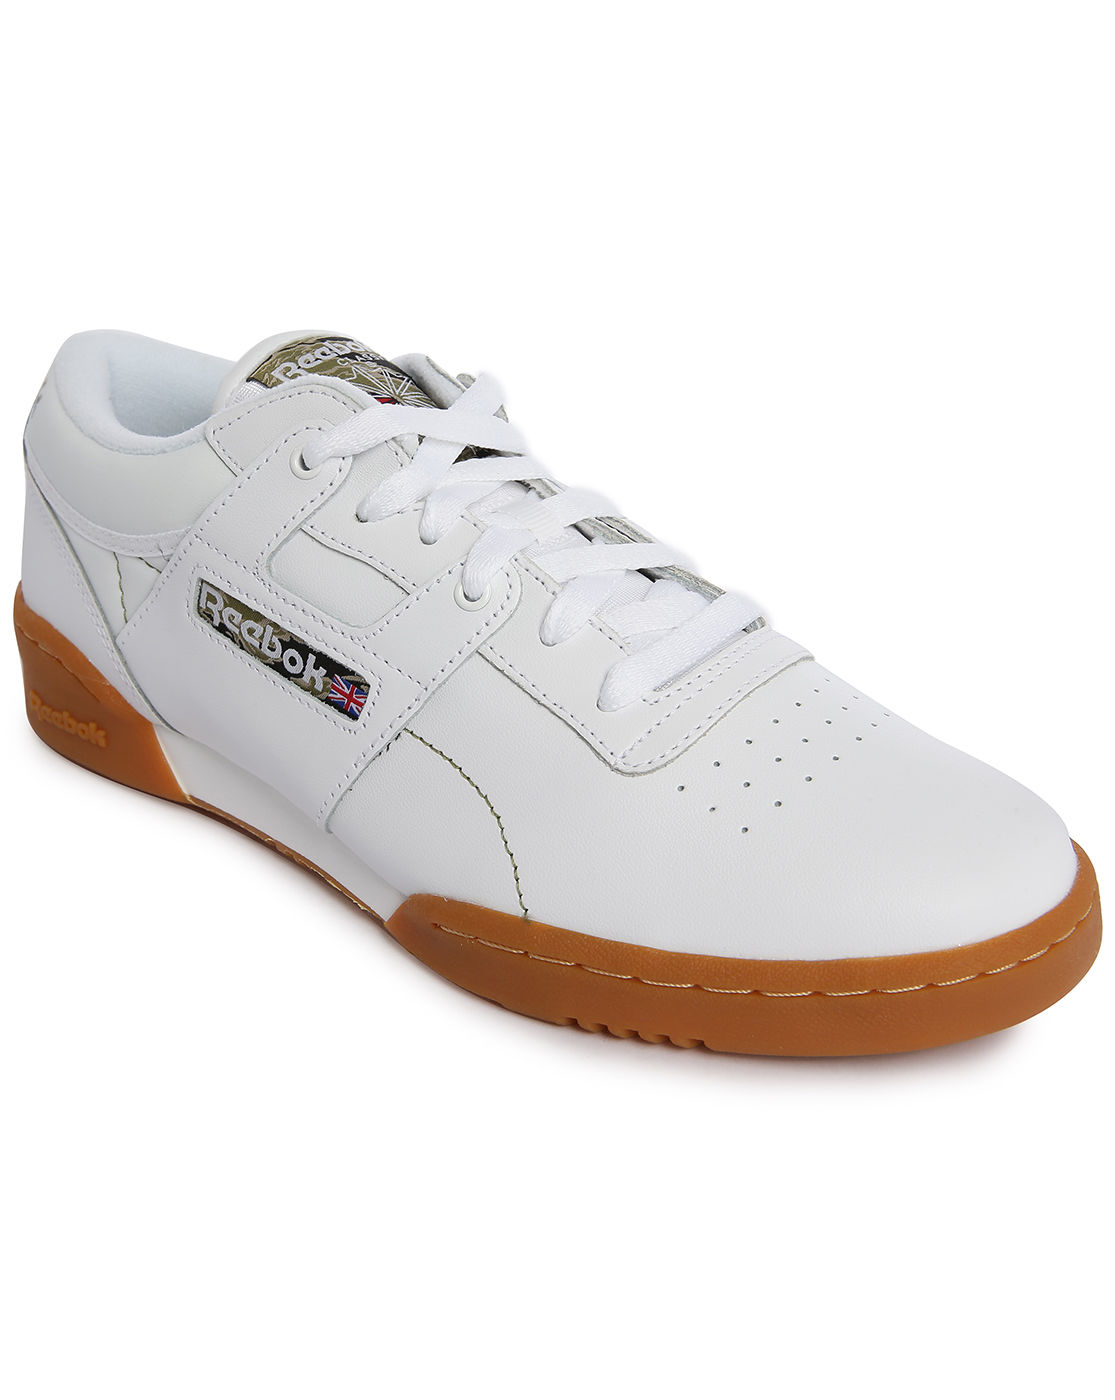 4e1ef23559e UK Shoes Reebok Workout Plus Mens Trainers In White RNO1401781. Reebok  Workout Low White Leather Sneakers With Gumsole In White For Men